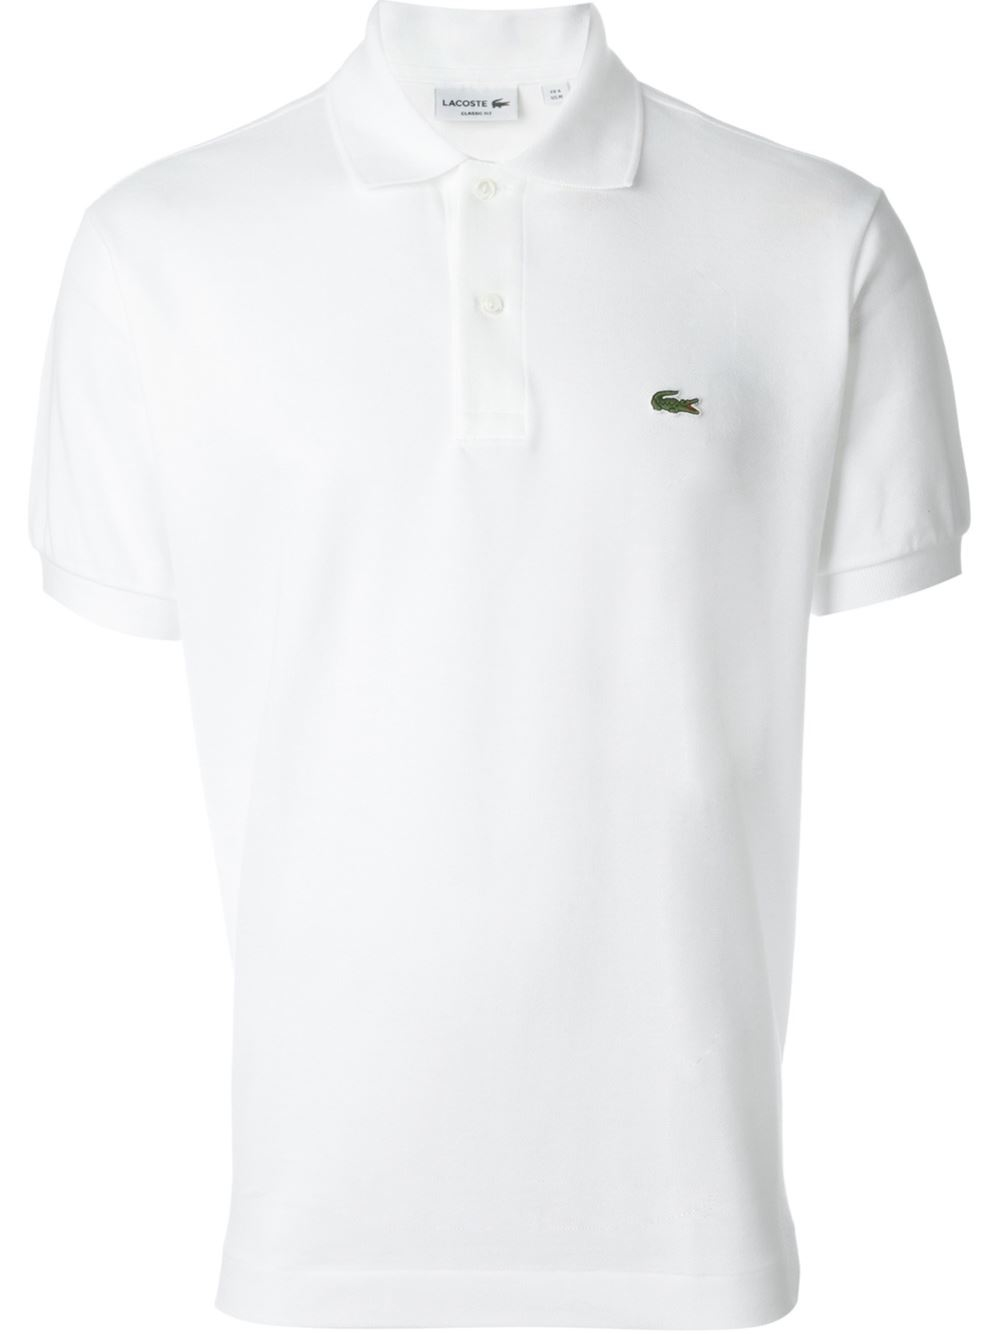 lacoste classic piqu polo shirt in white for men lyst. Black Bedroom Furniture Sets. Home Design Ideas